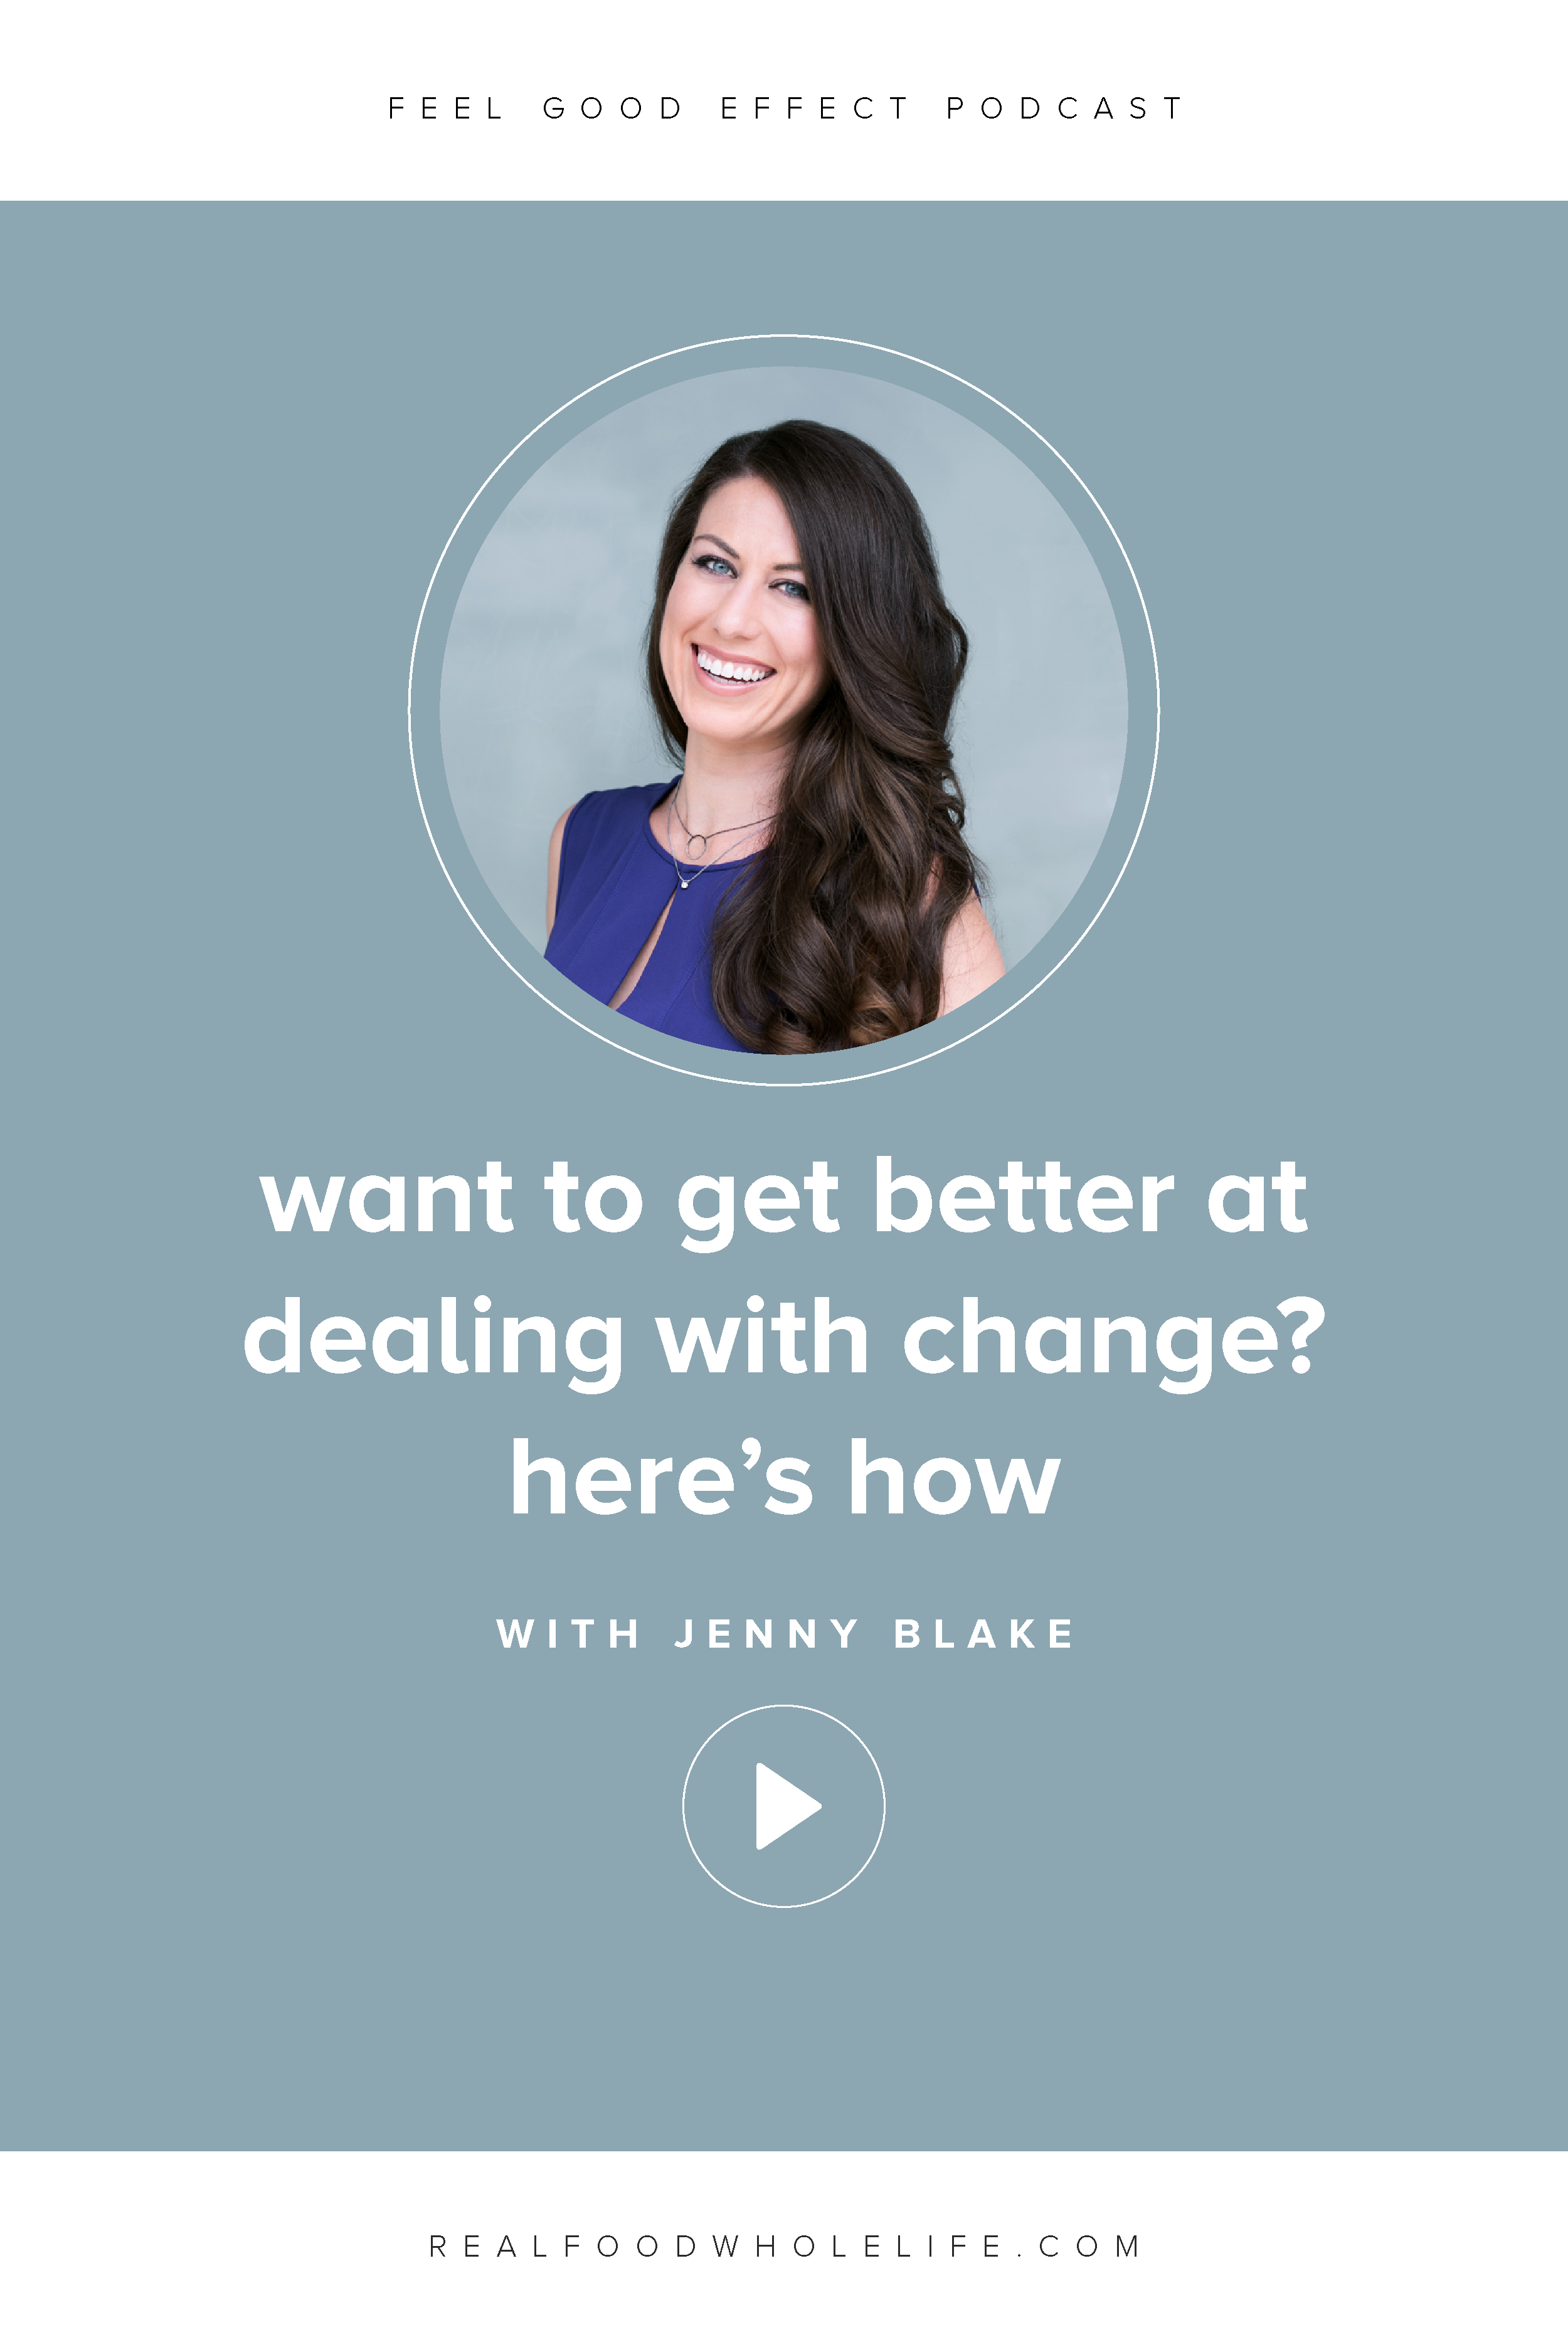 Want to get better at dealing with change? Here's how, with Jenny Blake on the Feel Good Effect Podcast. #realfoodwholelife #feelgoodeffect #podcast #resilience #productivity